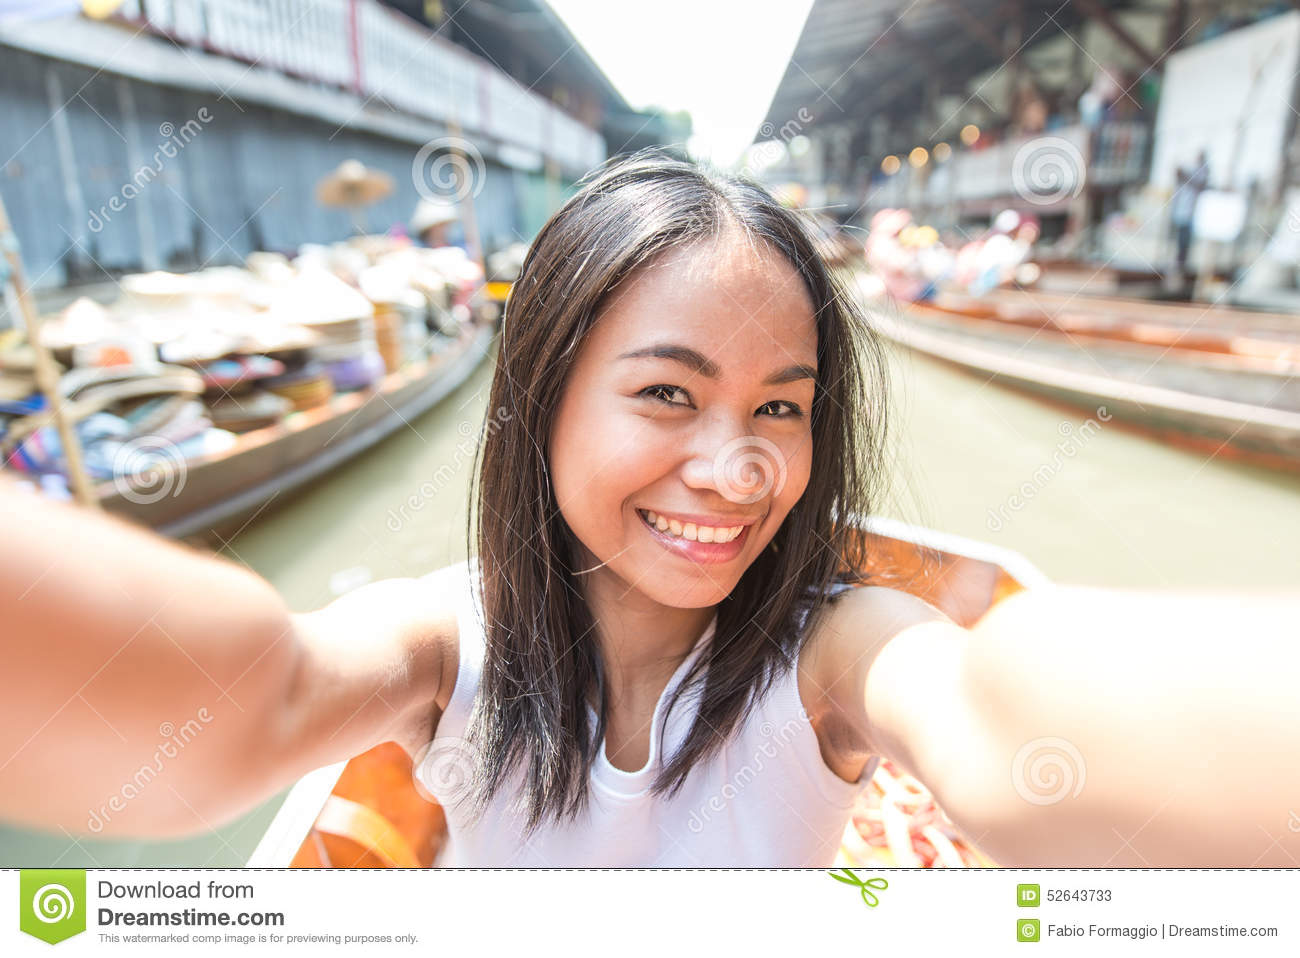 selfy Thai girl